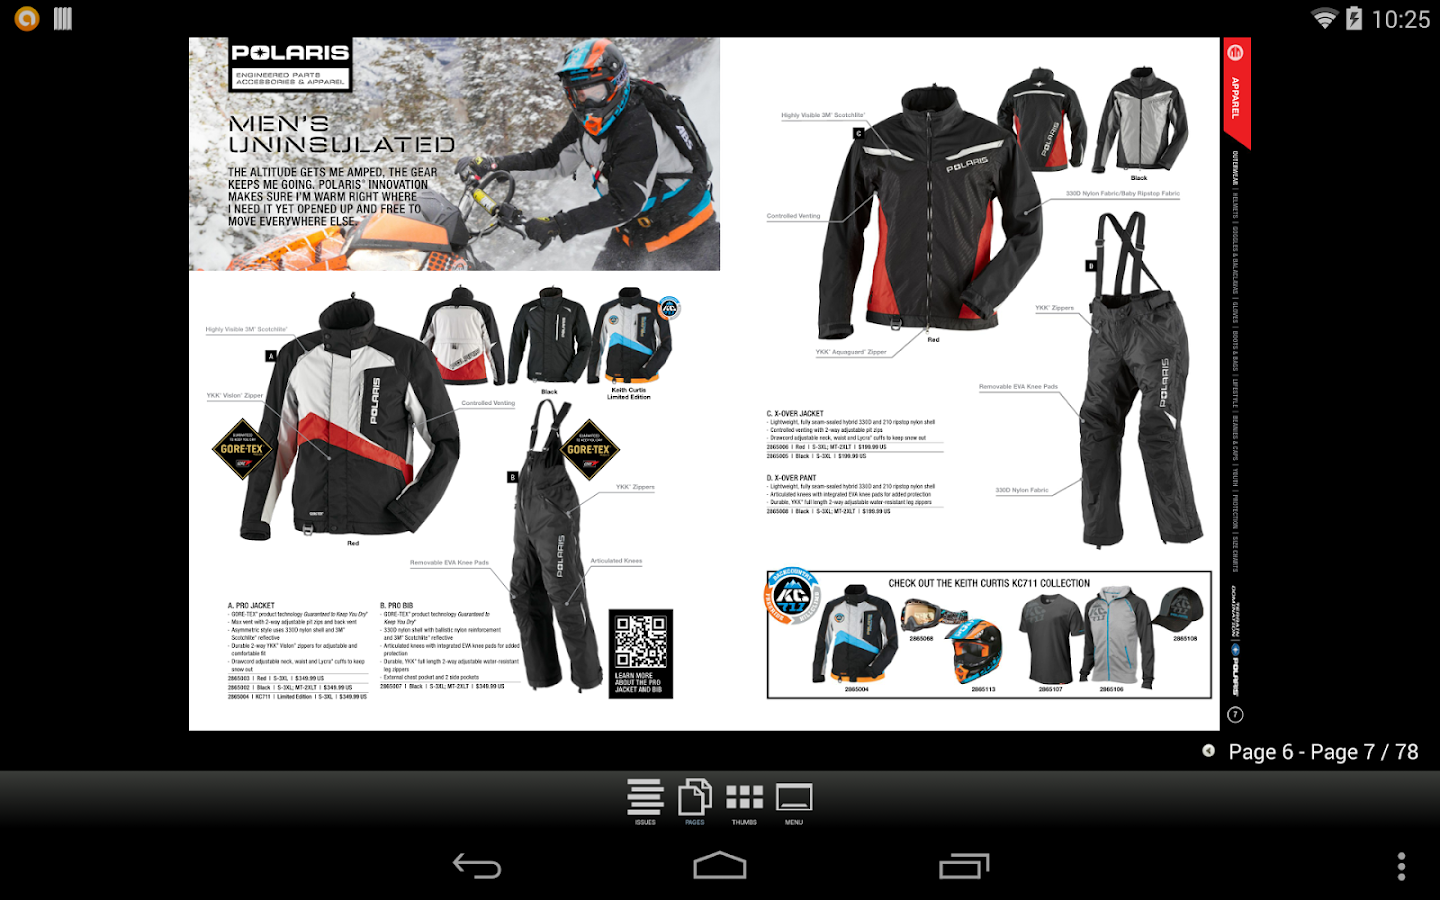 Polaris Snow Catalogs US - screenshot